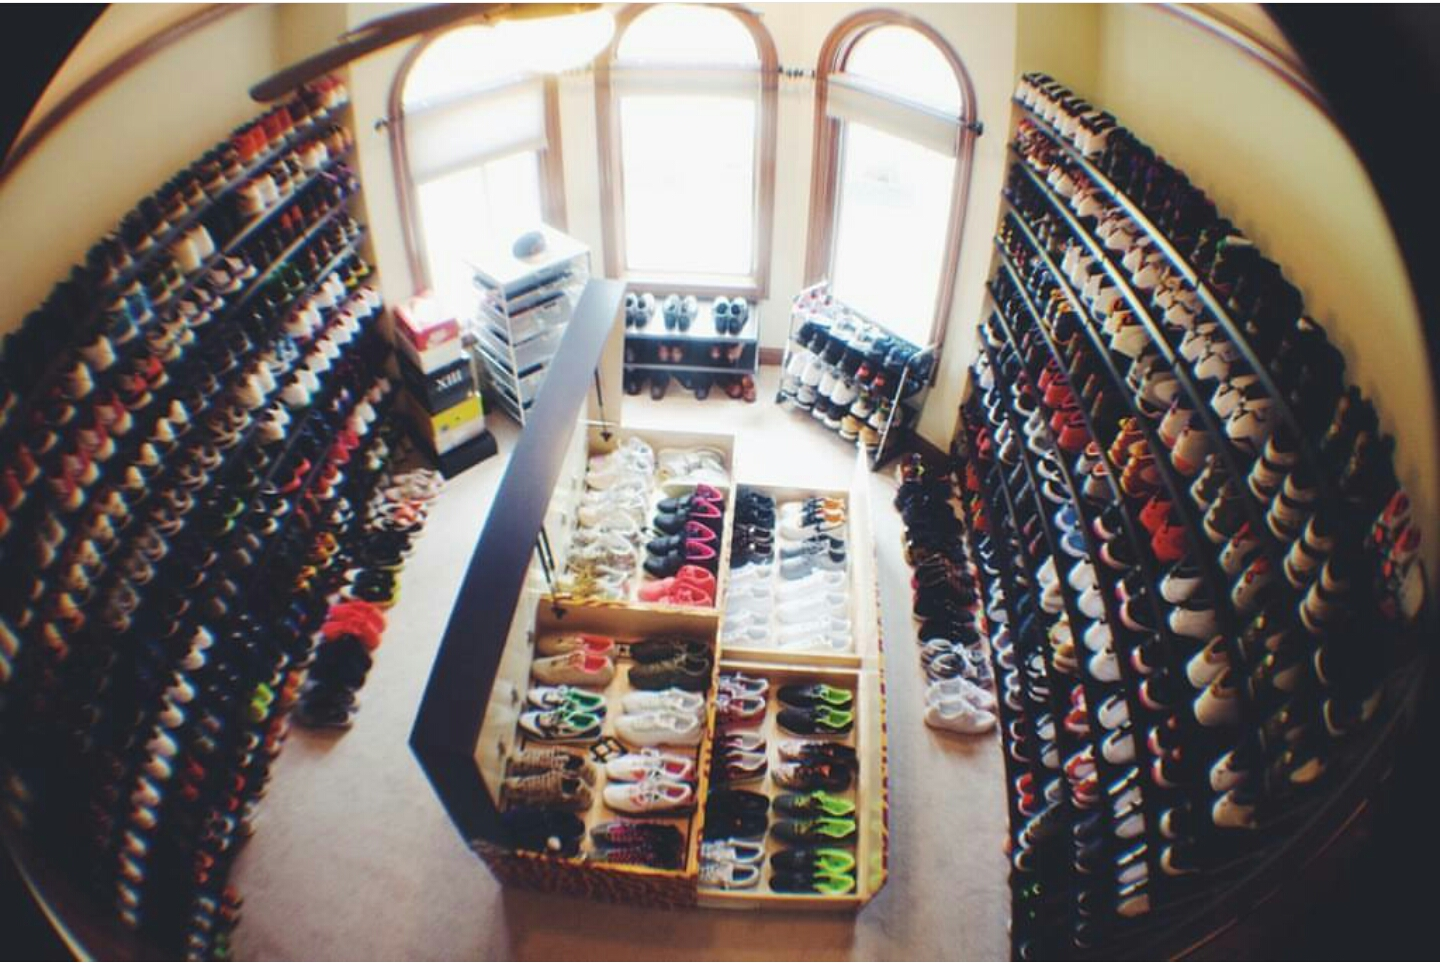 Exceptional Inside Look At J.R. Smithu0027s Amazing Sneaker Closet, Can You Guess How Many  Pairs?